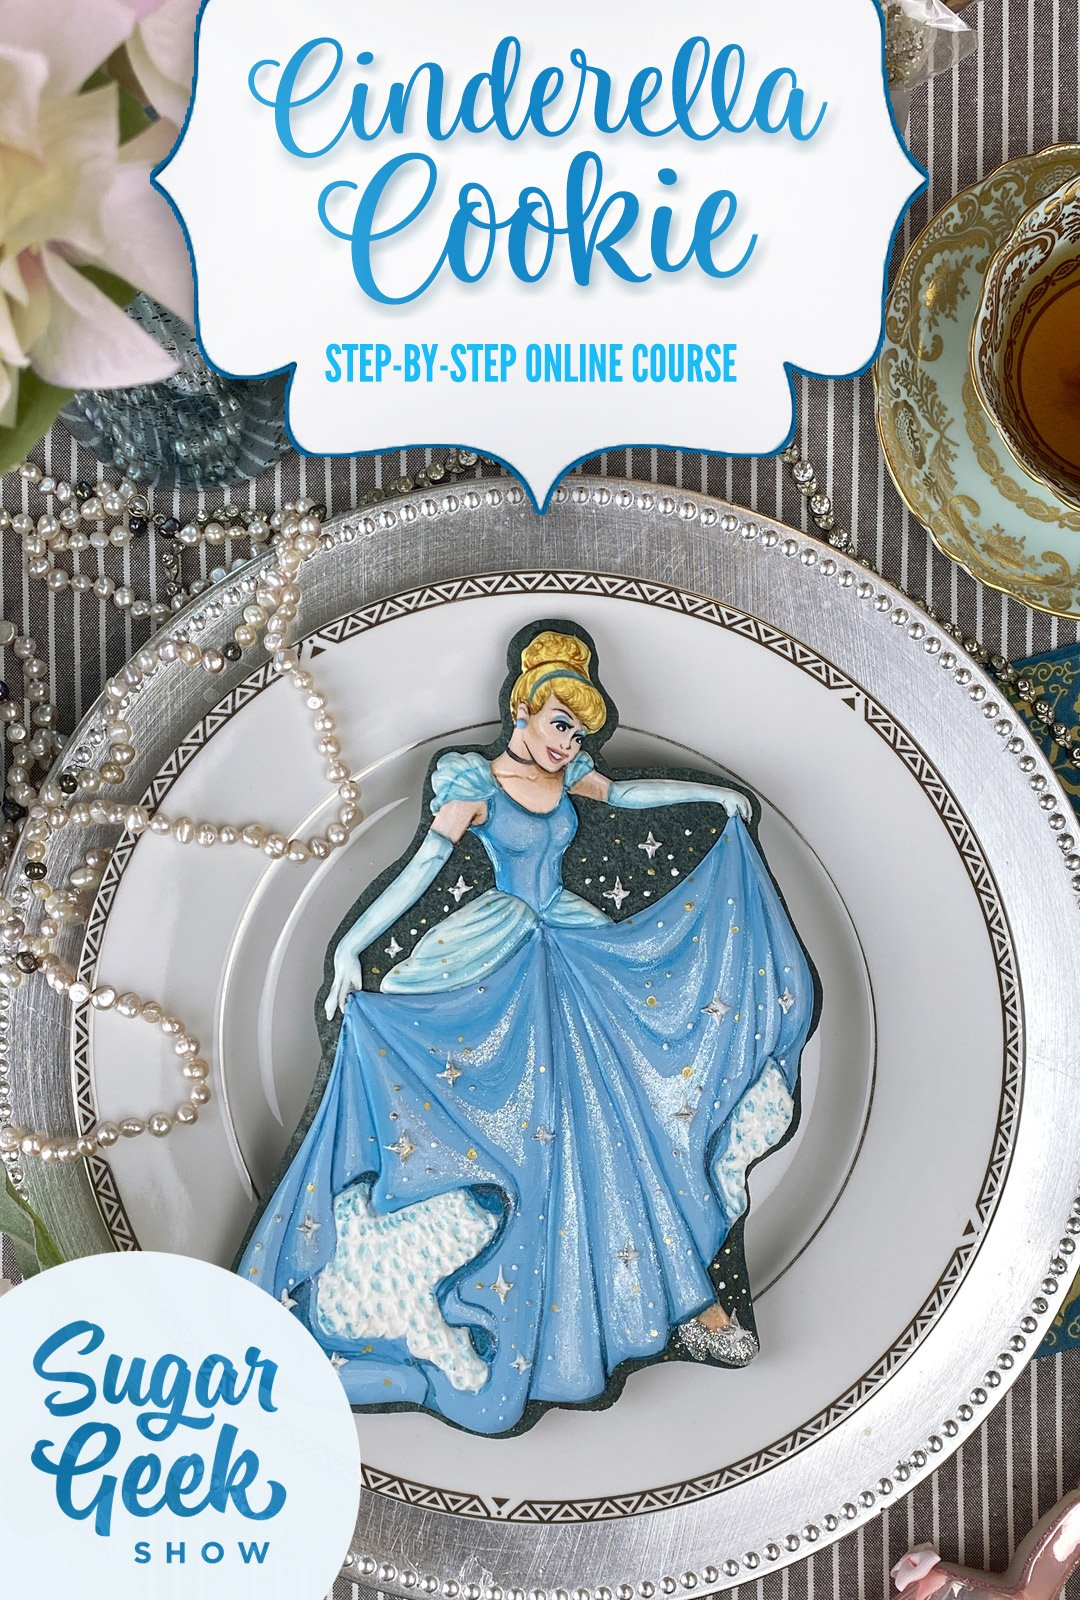 sugar cookie designed and detailed to look like Cinderella